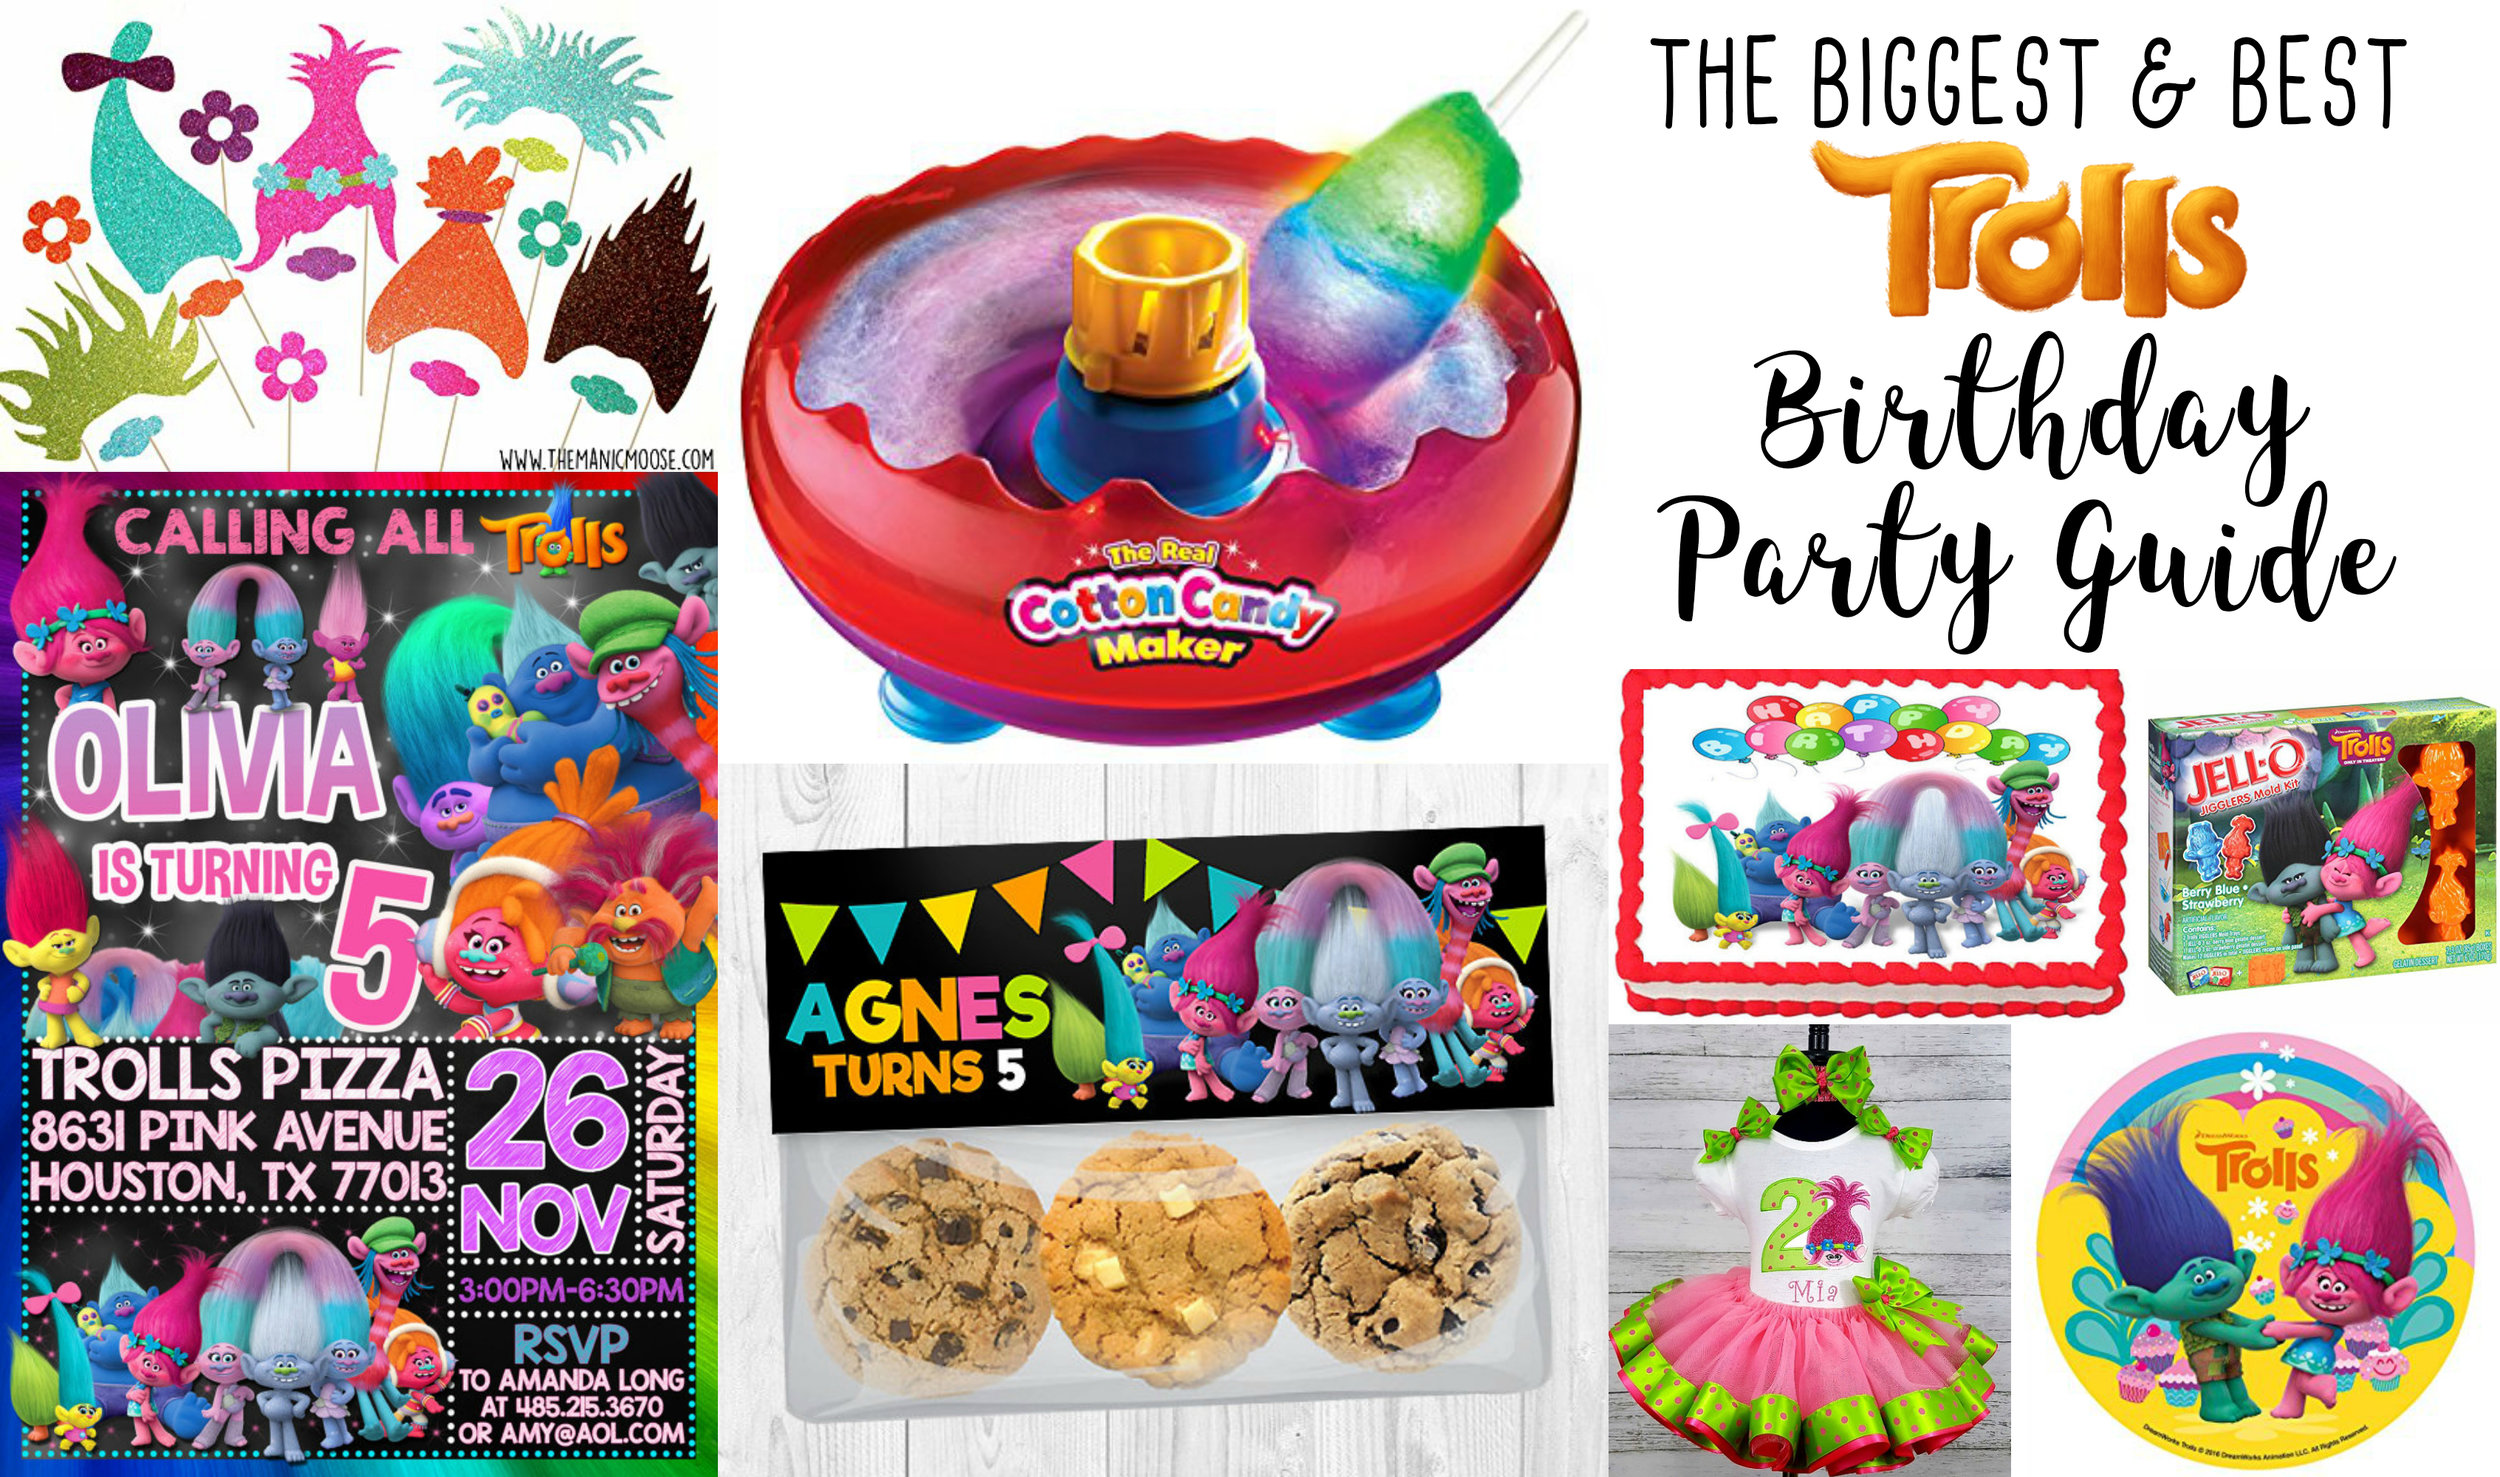 trolls-birthday-party-decorations-supplies.jpg